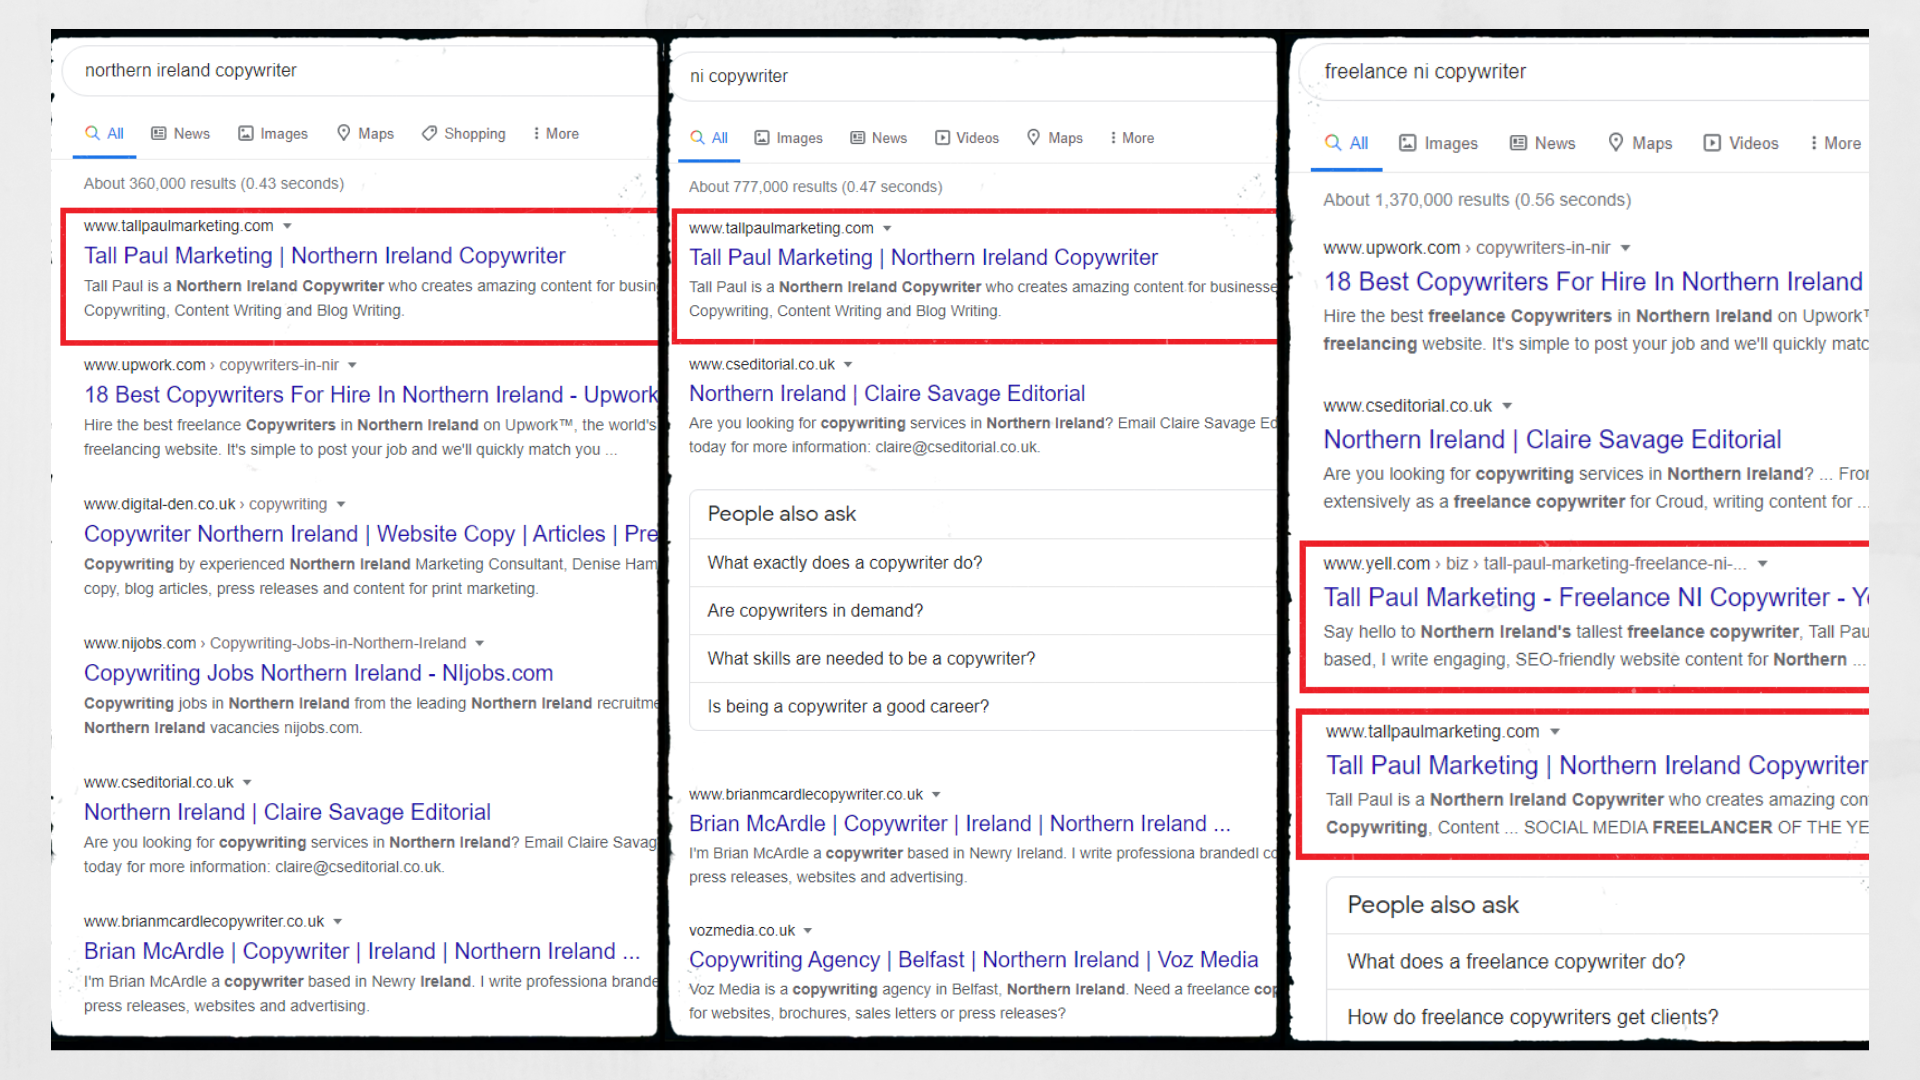 In the last nine months I've crept on to Google's first page of results and up to the top of the page. Content Marketing Agency NI - Tall Paul Marketing